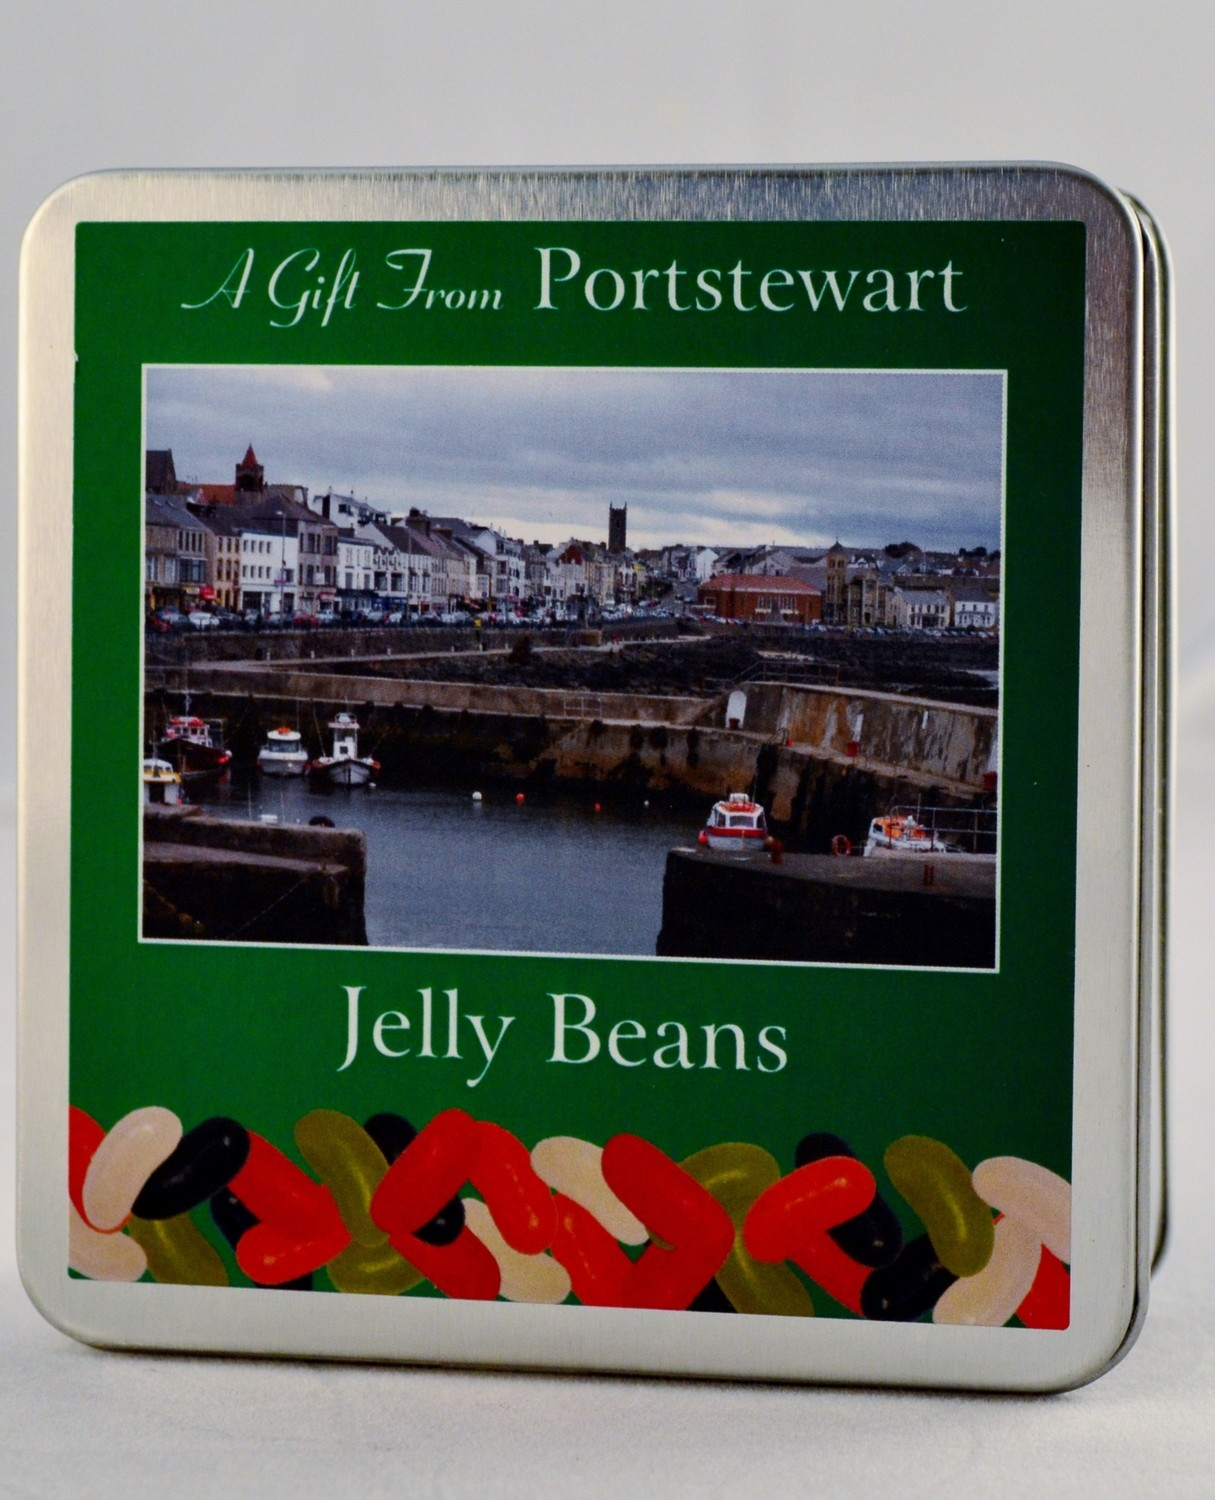 Jelly Beans Square Tin - Portstewart Branded